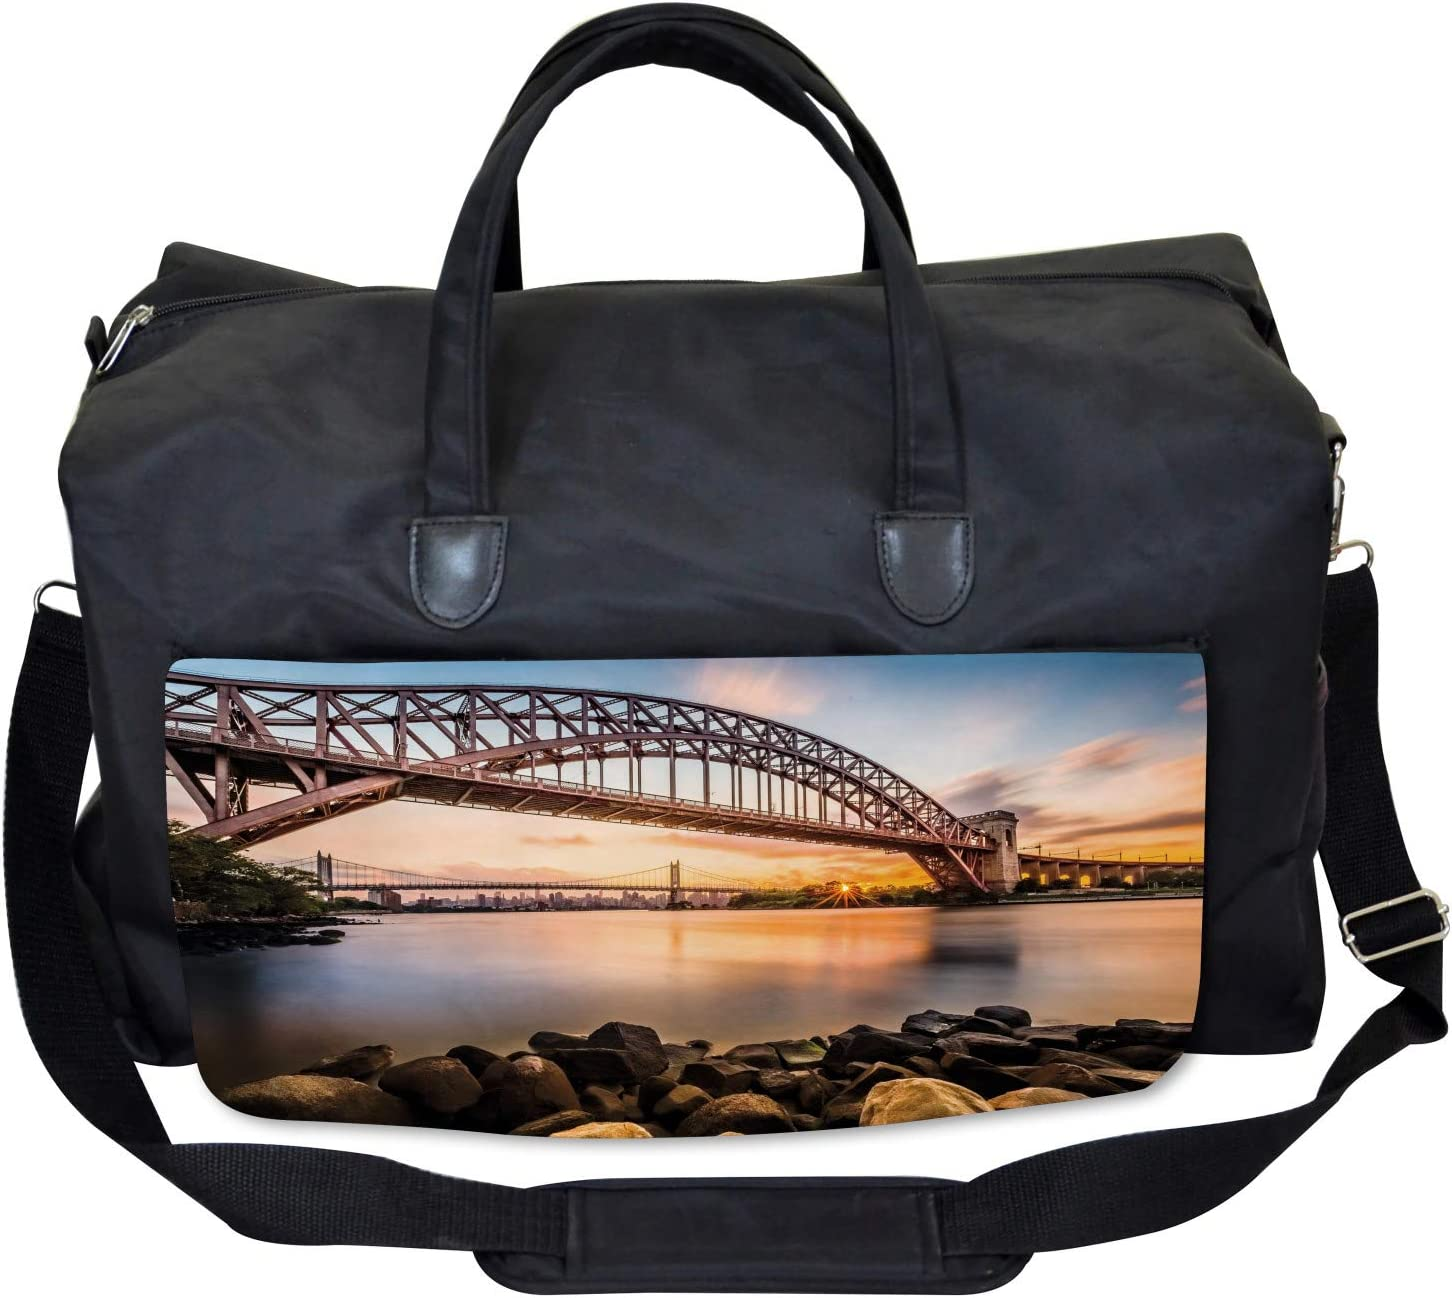 Large Weekender Carry-on Ambesonne New York Gym Bag Sunset Evening View